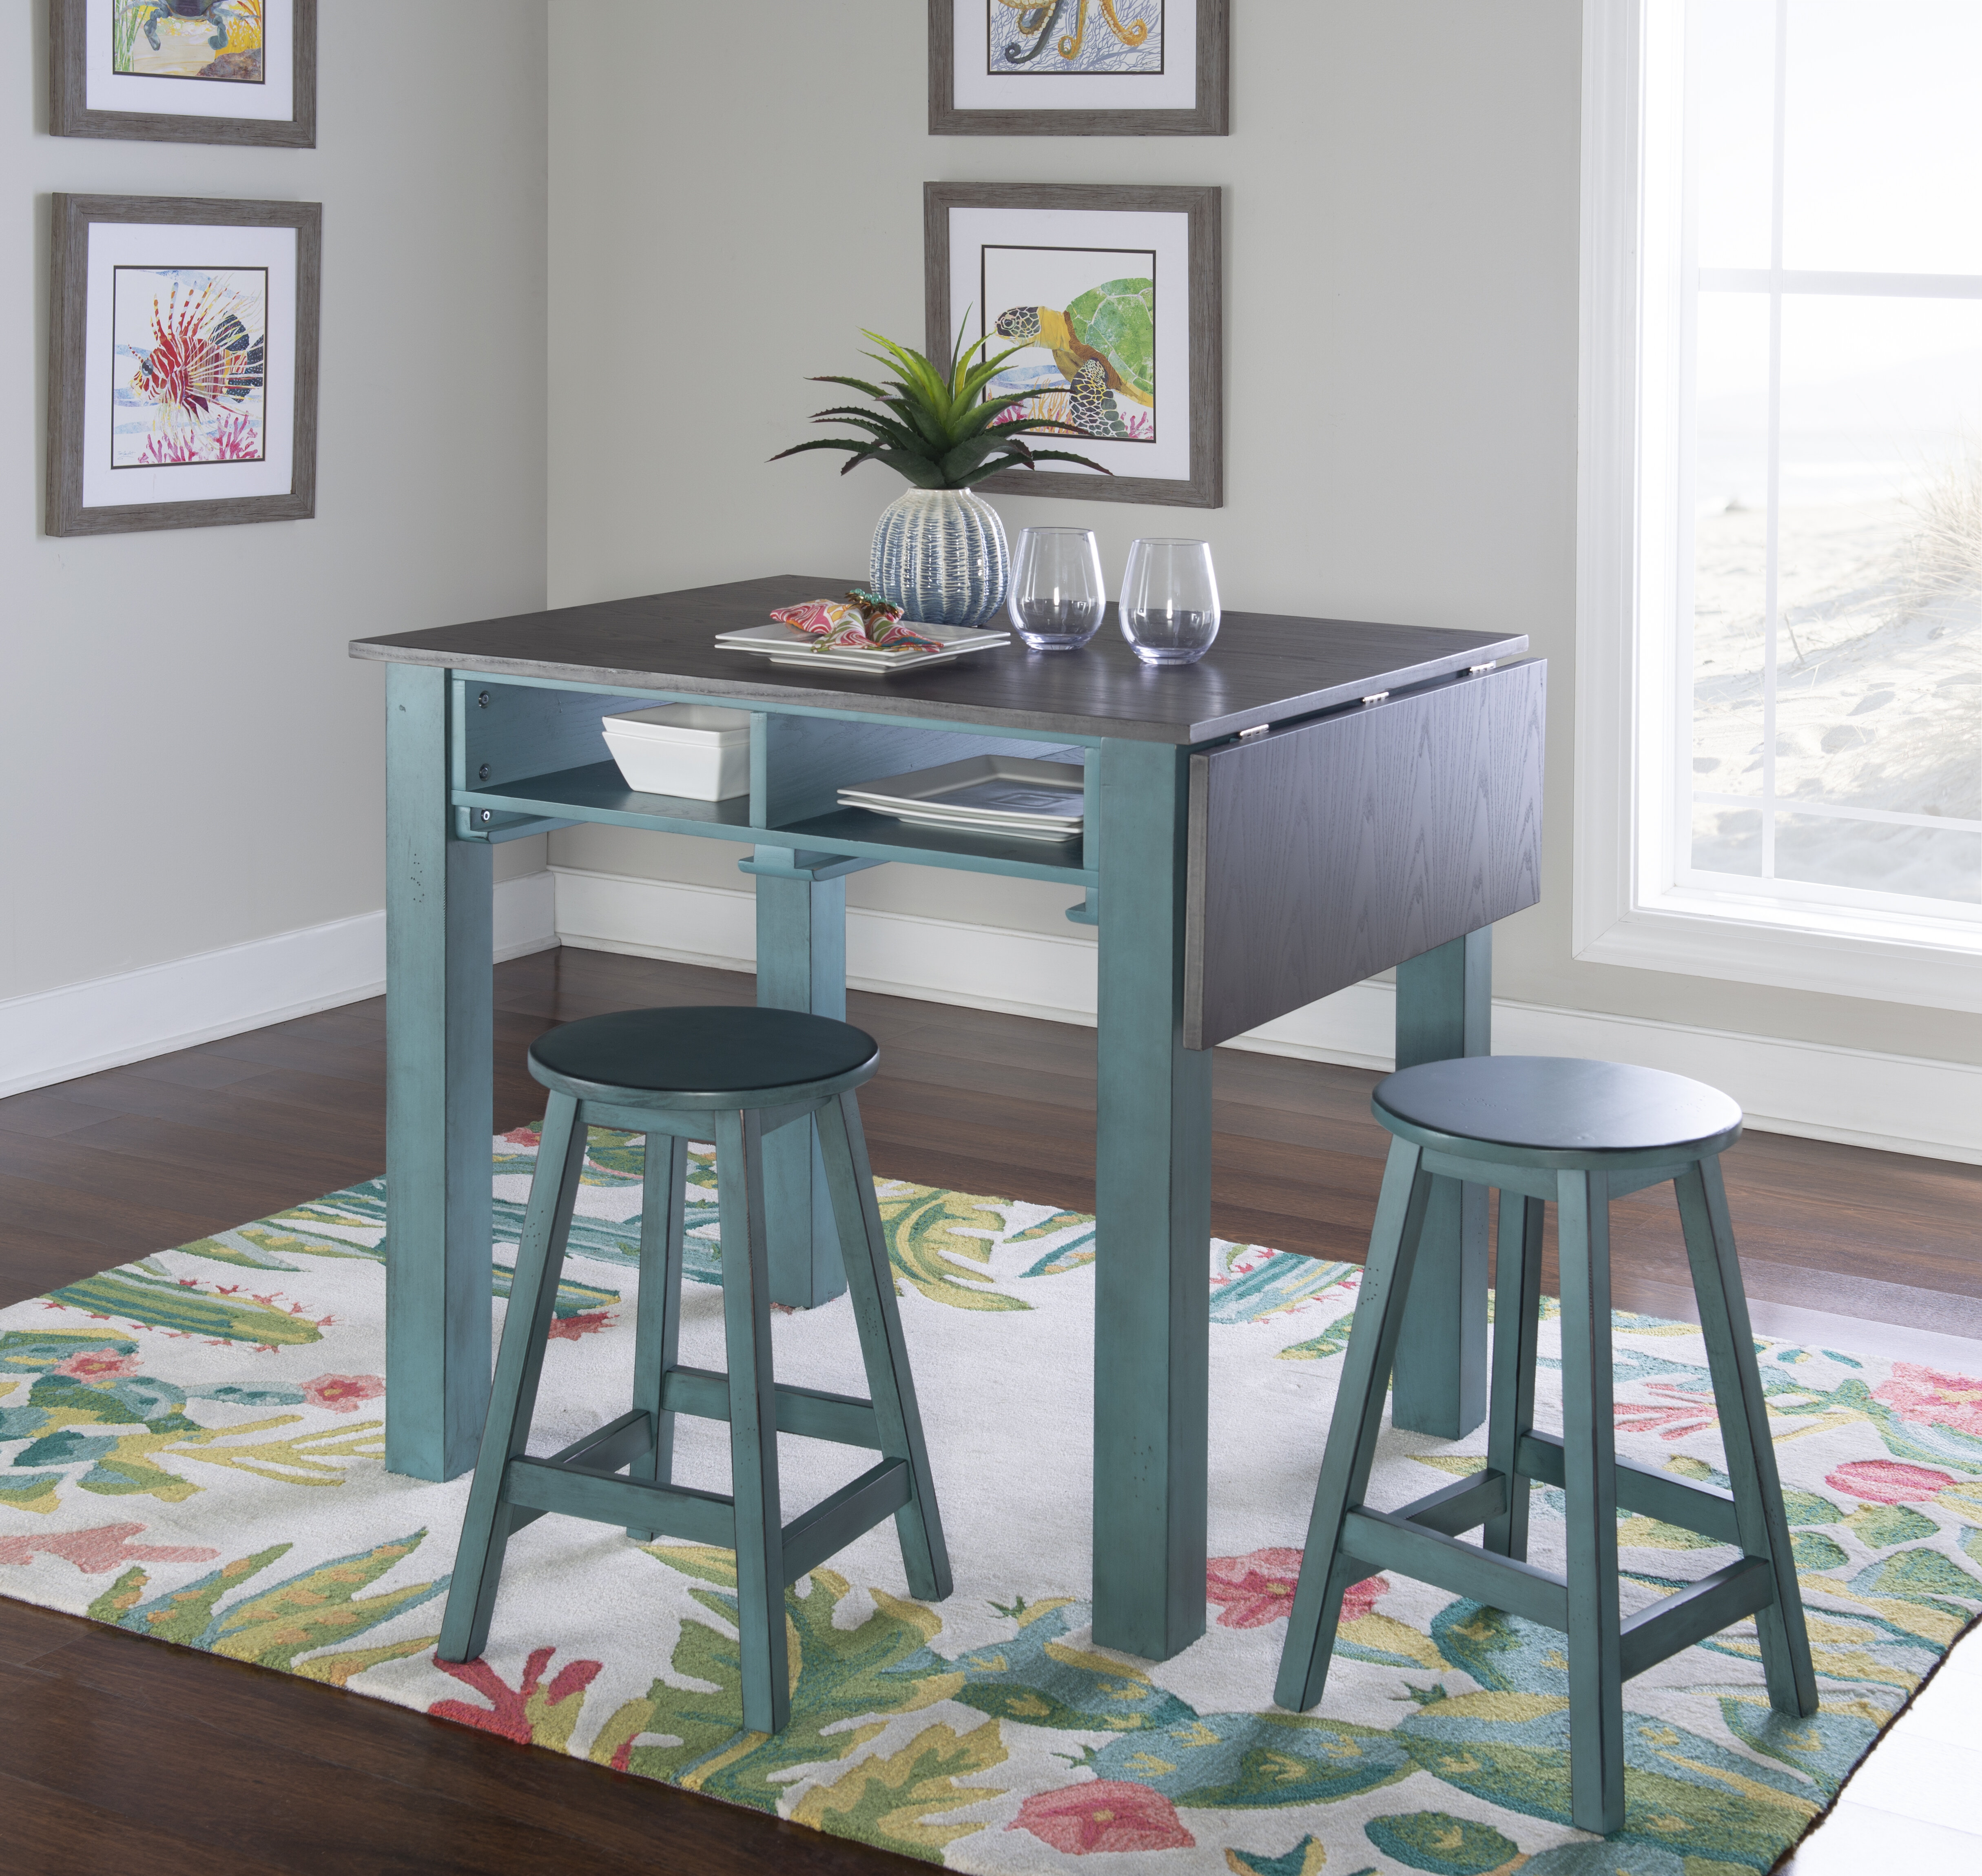 Kitchen Islands With Seating You Ll Love In 2020 Wayfair,Chinoiserie Wallpaper Bedroom